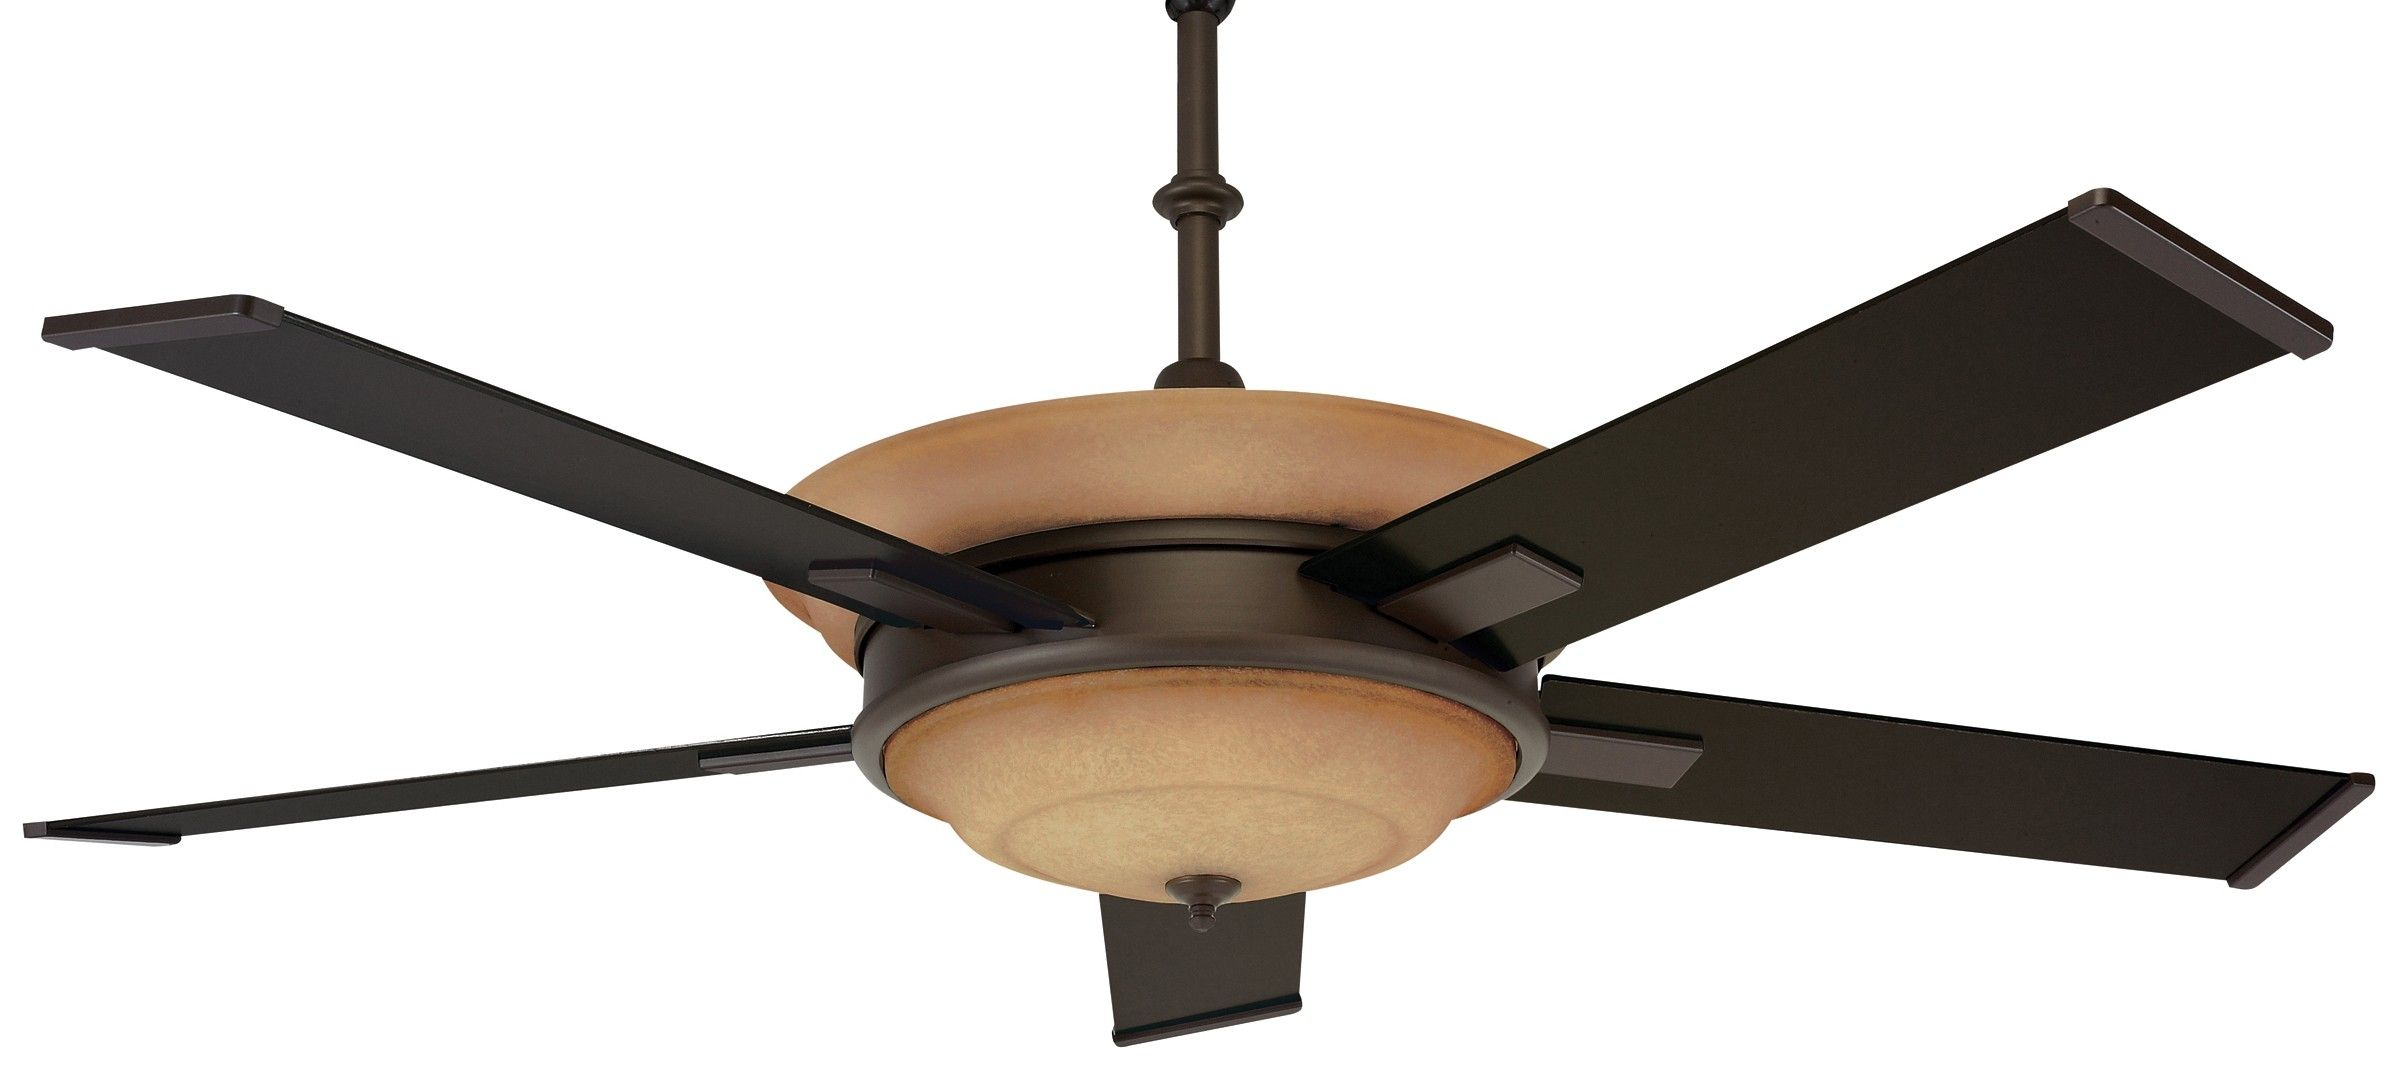 Ceiling Fan With Uplight And Downlight Ceiling Fan Downlights